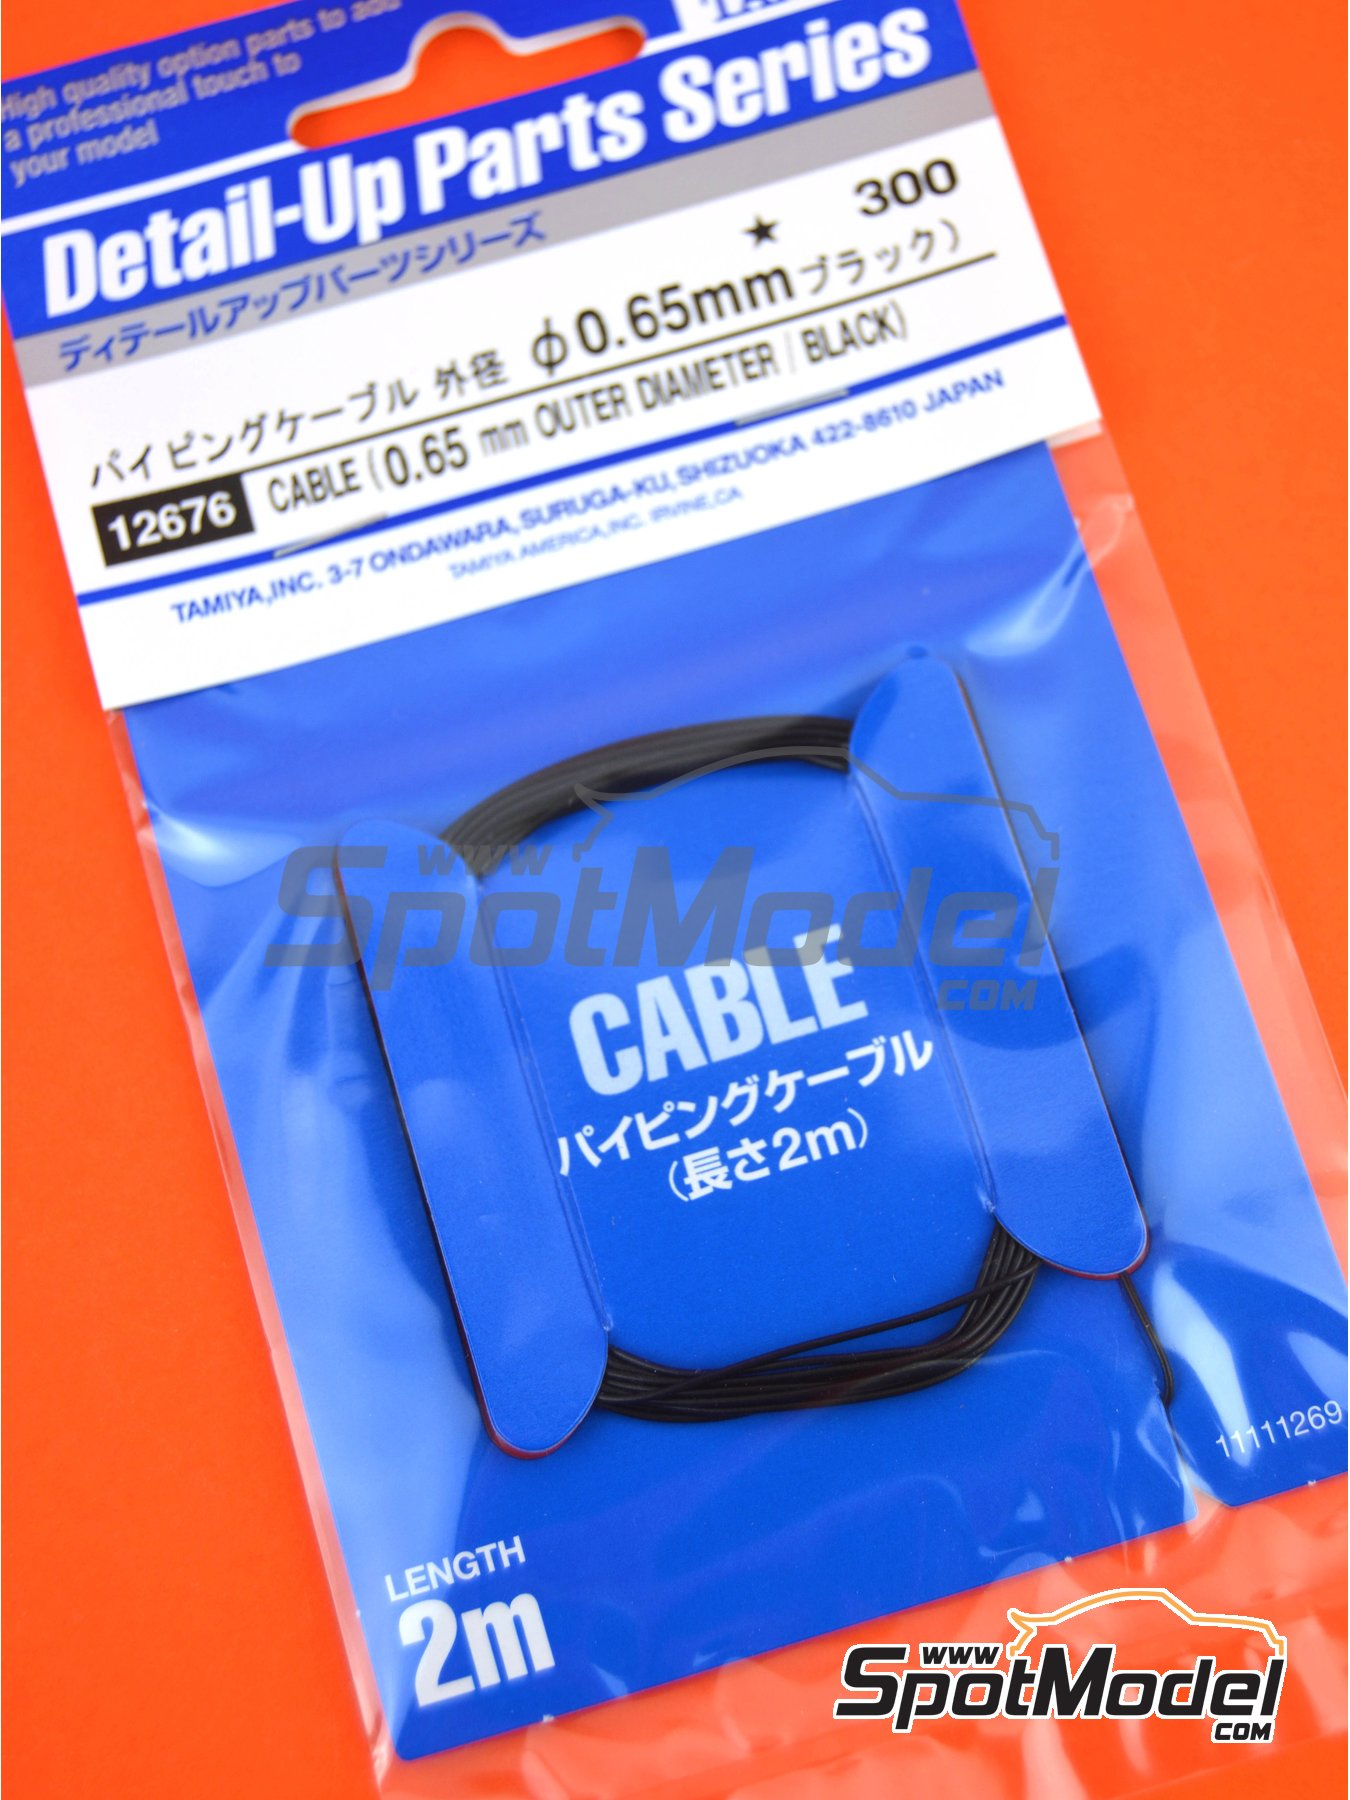 Black wire 0.65mm | Piping cord manufactured by Tamiya (ref. TAM12676) image